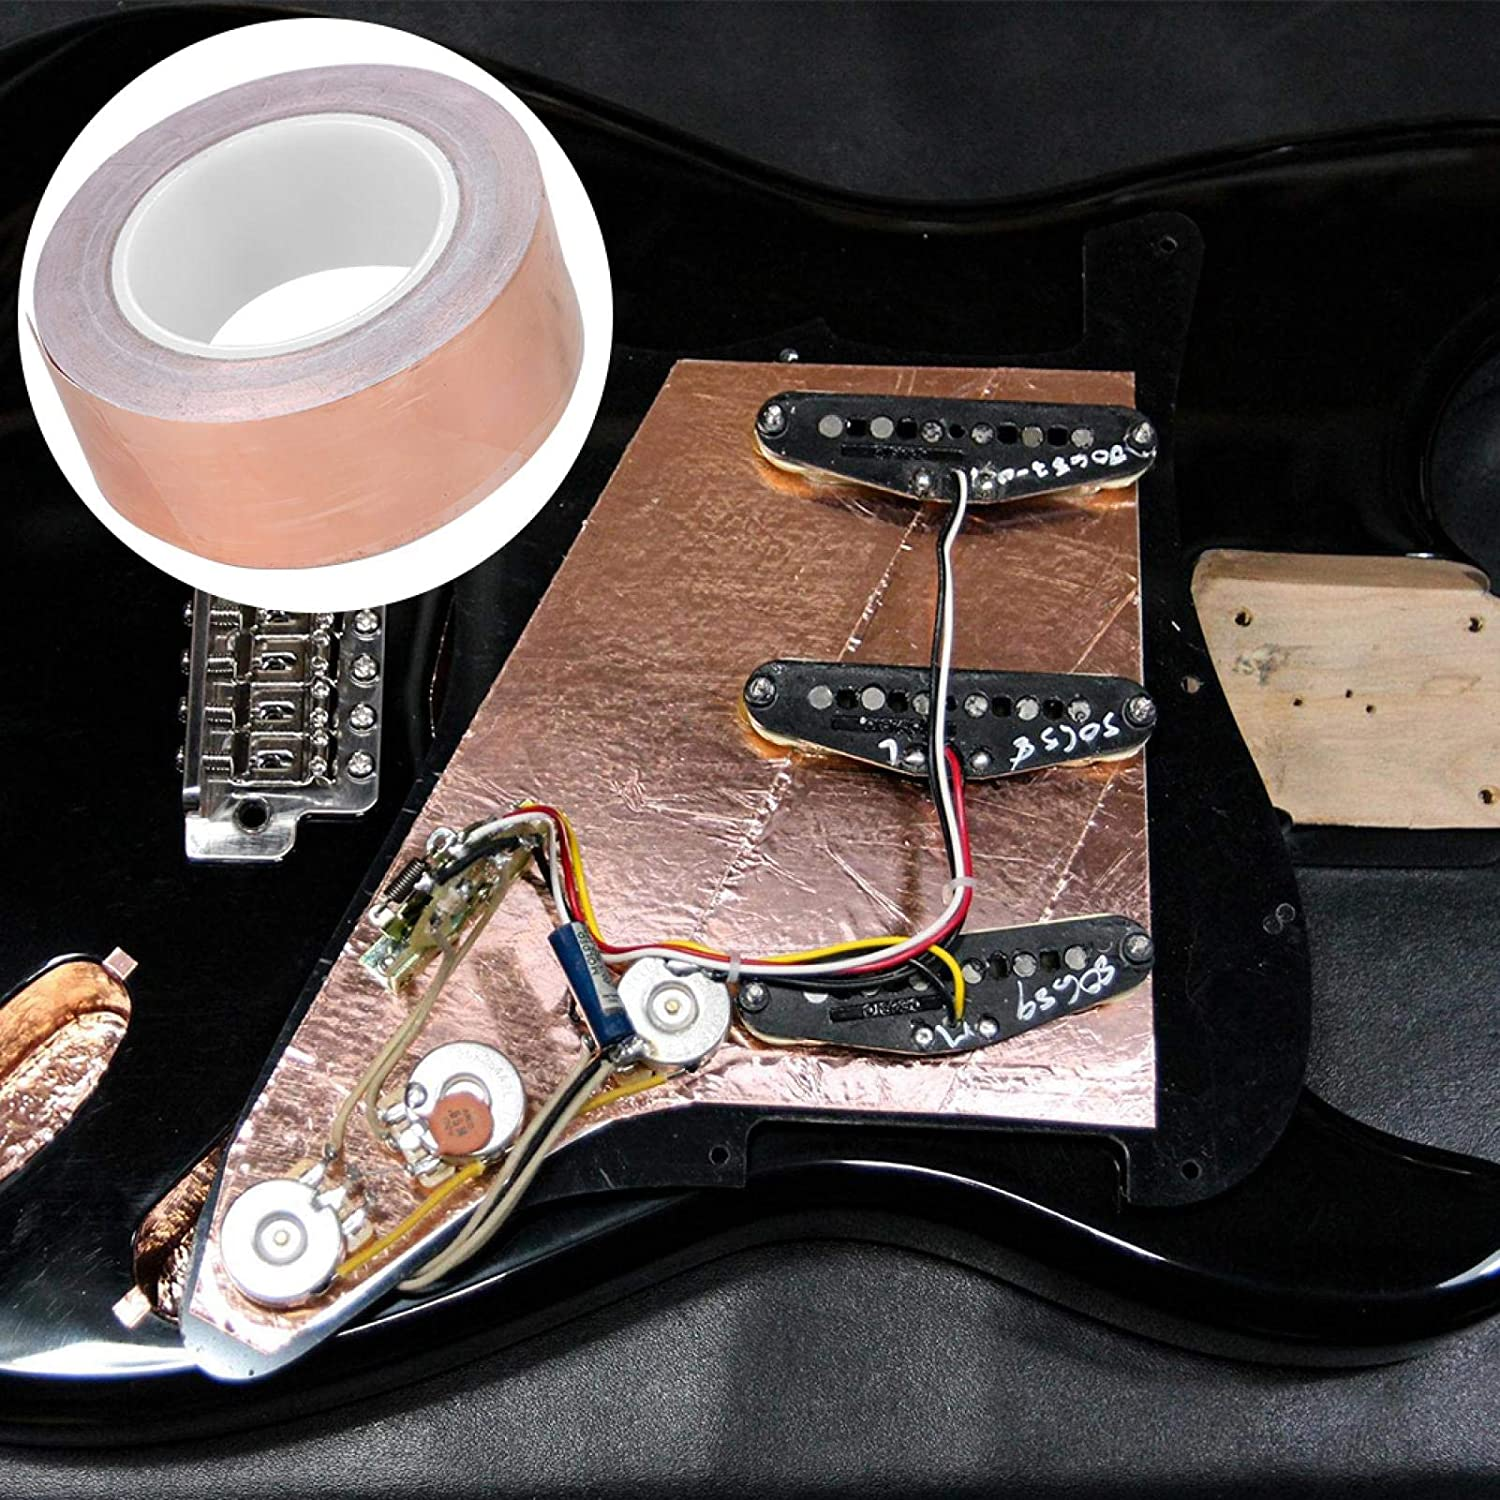 Copper Tape Practical for EMI Guitar Shielding Finally resale start Beginners 30m Price reduction